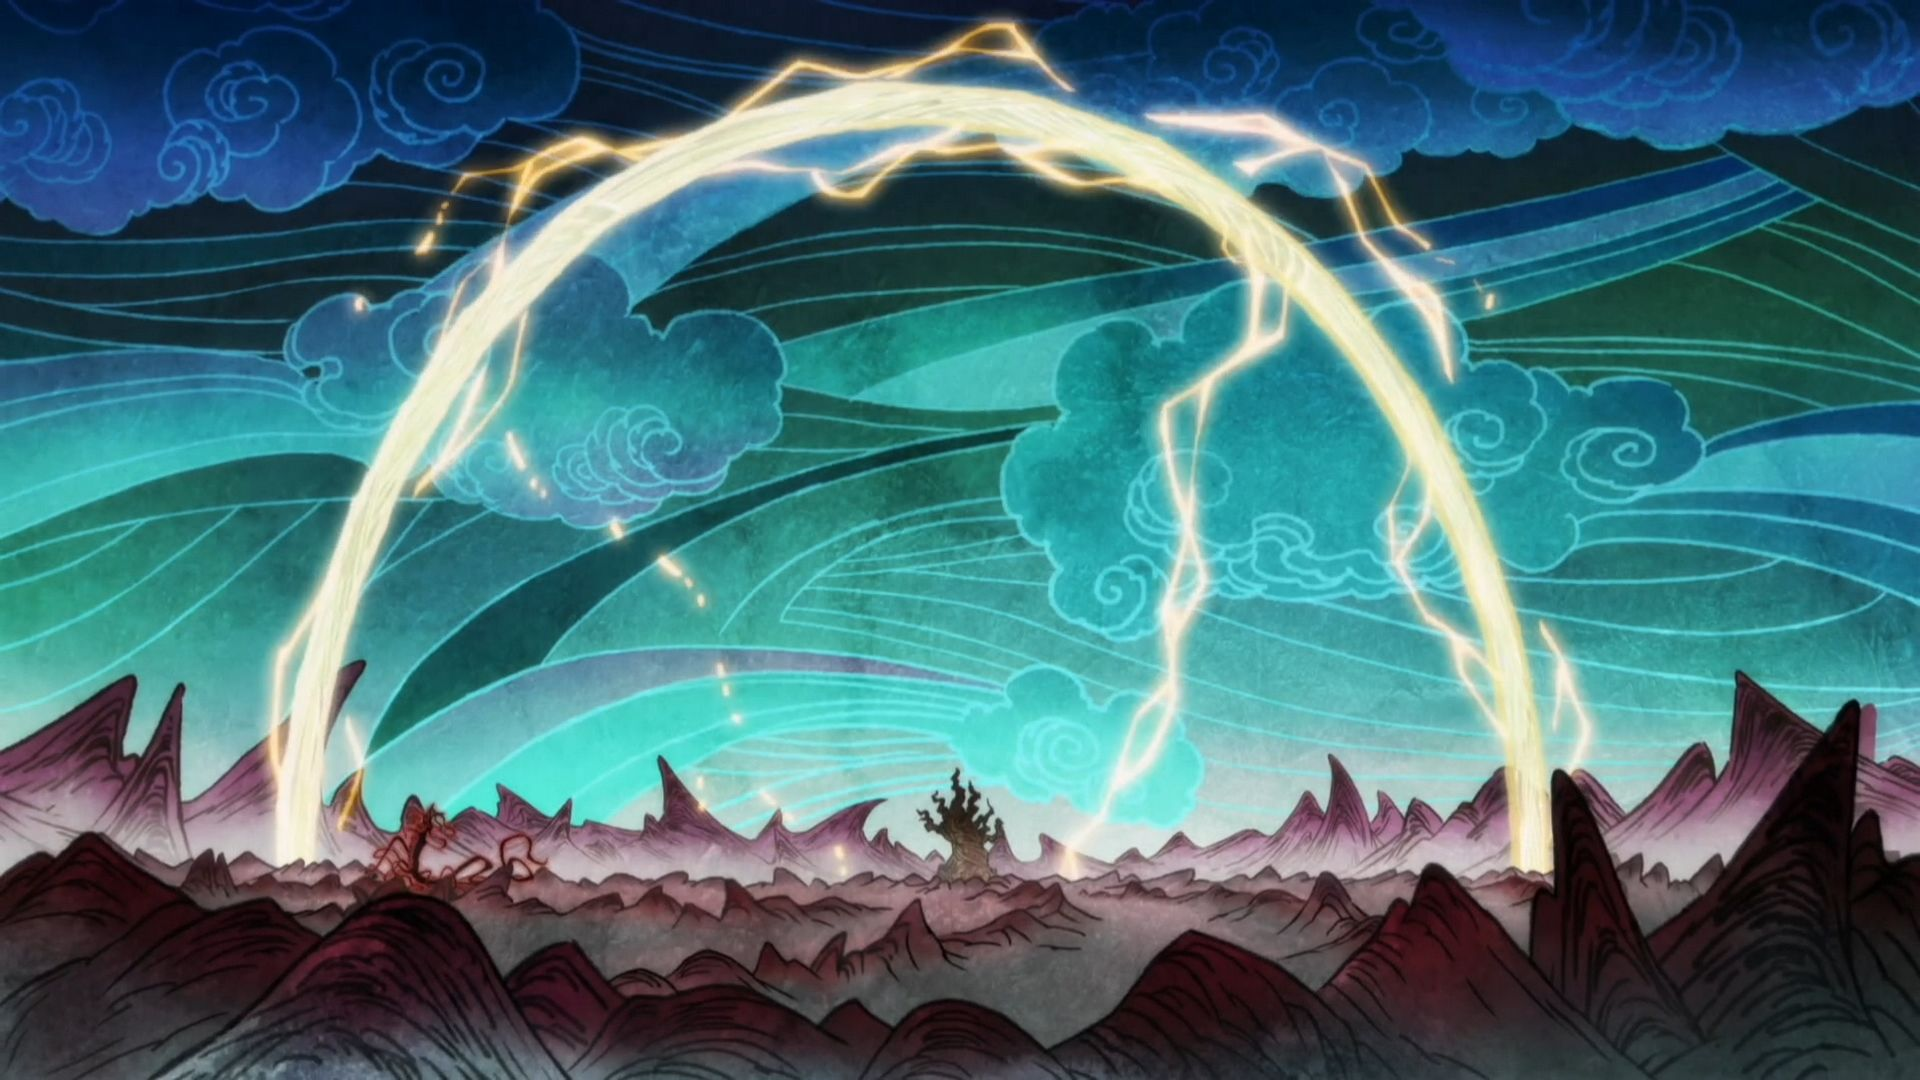 Wallpaper the legend of korra book 2 spiritsg 19201080 wallpaper the legend of korra book 2 spirits voltagebd Images